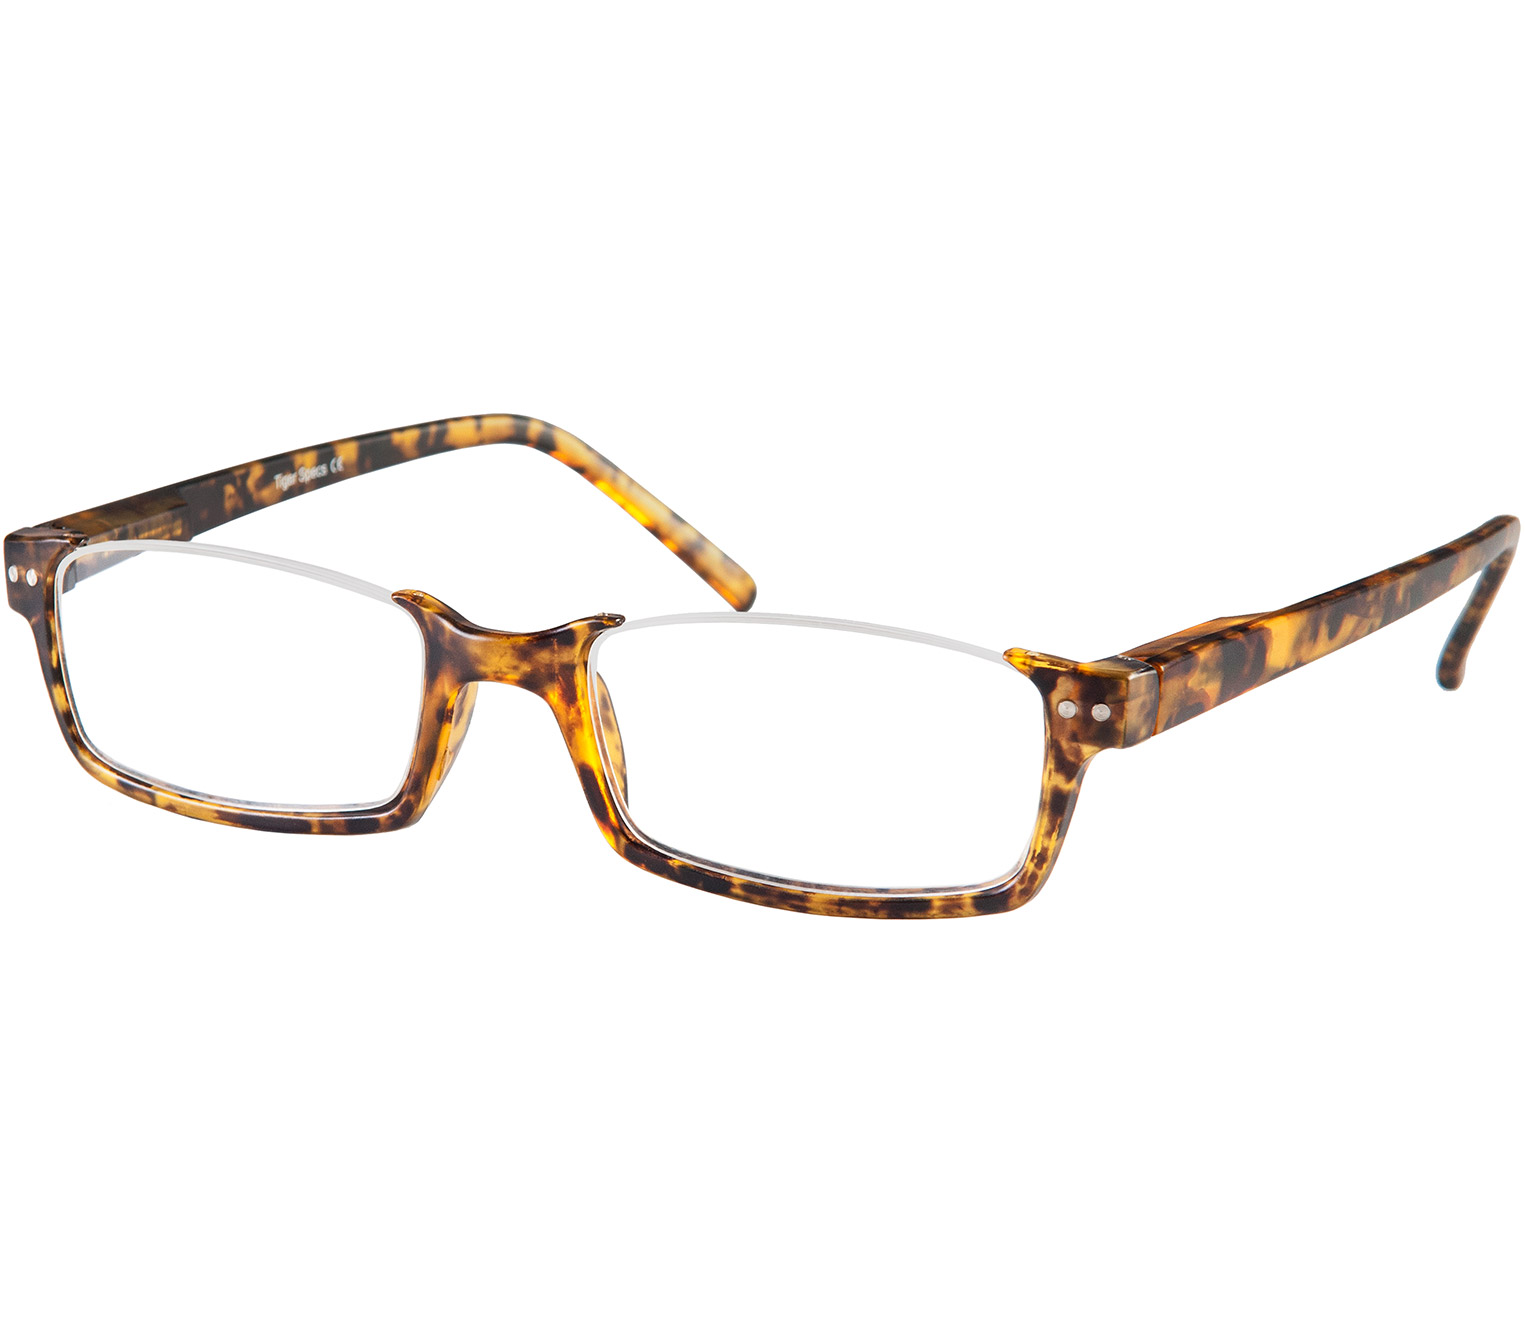 Main Image (Angle) - Newark (Tortoiseshell) Semi-rimless Reading Glasses